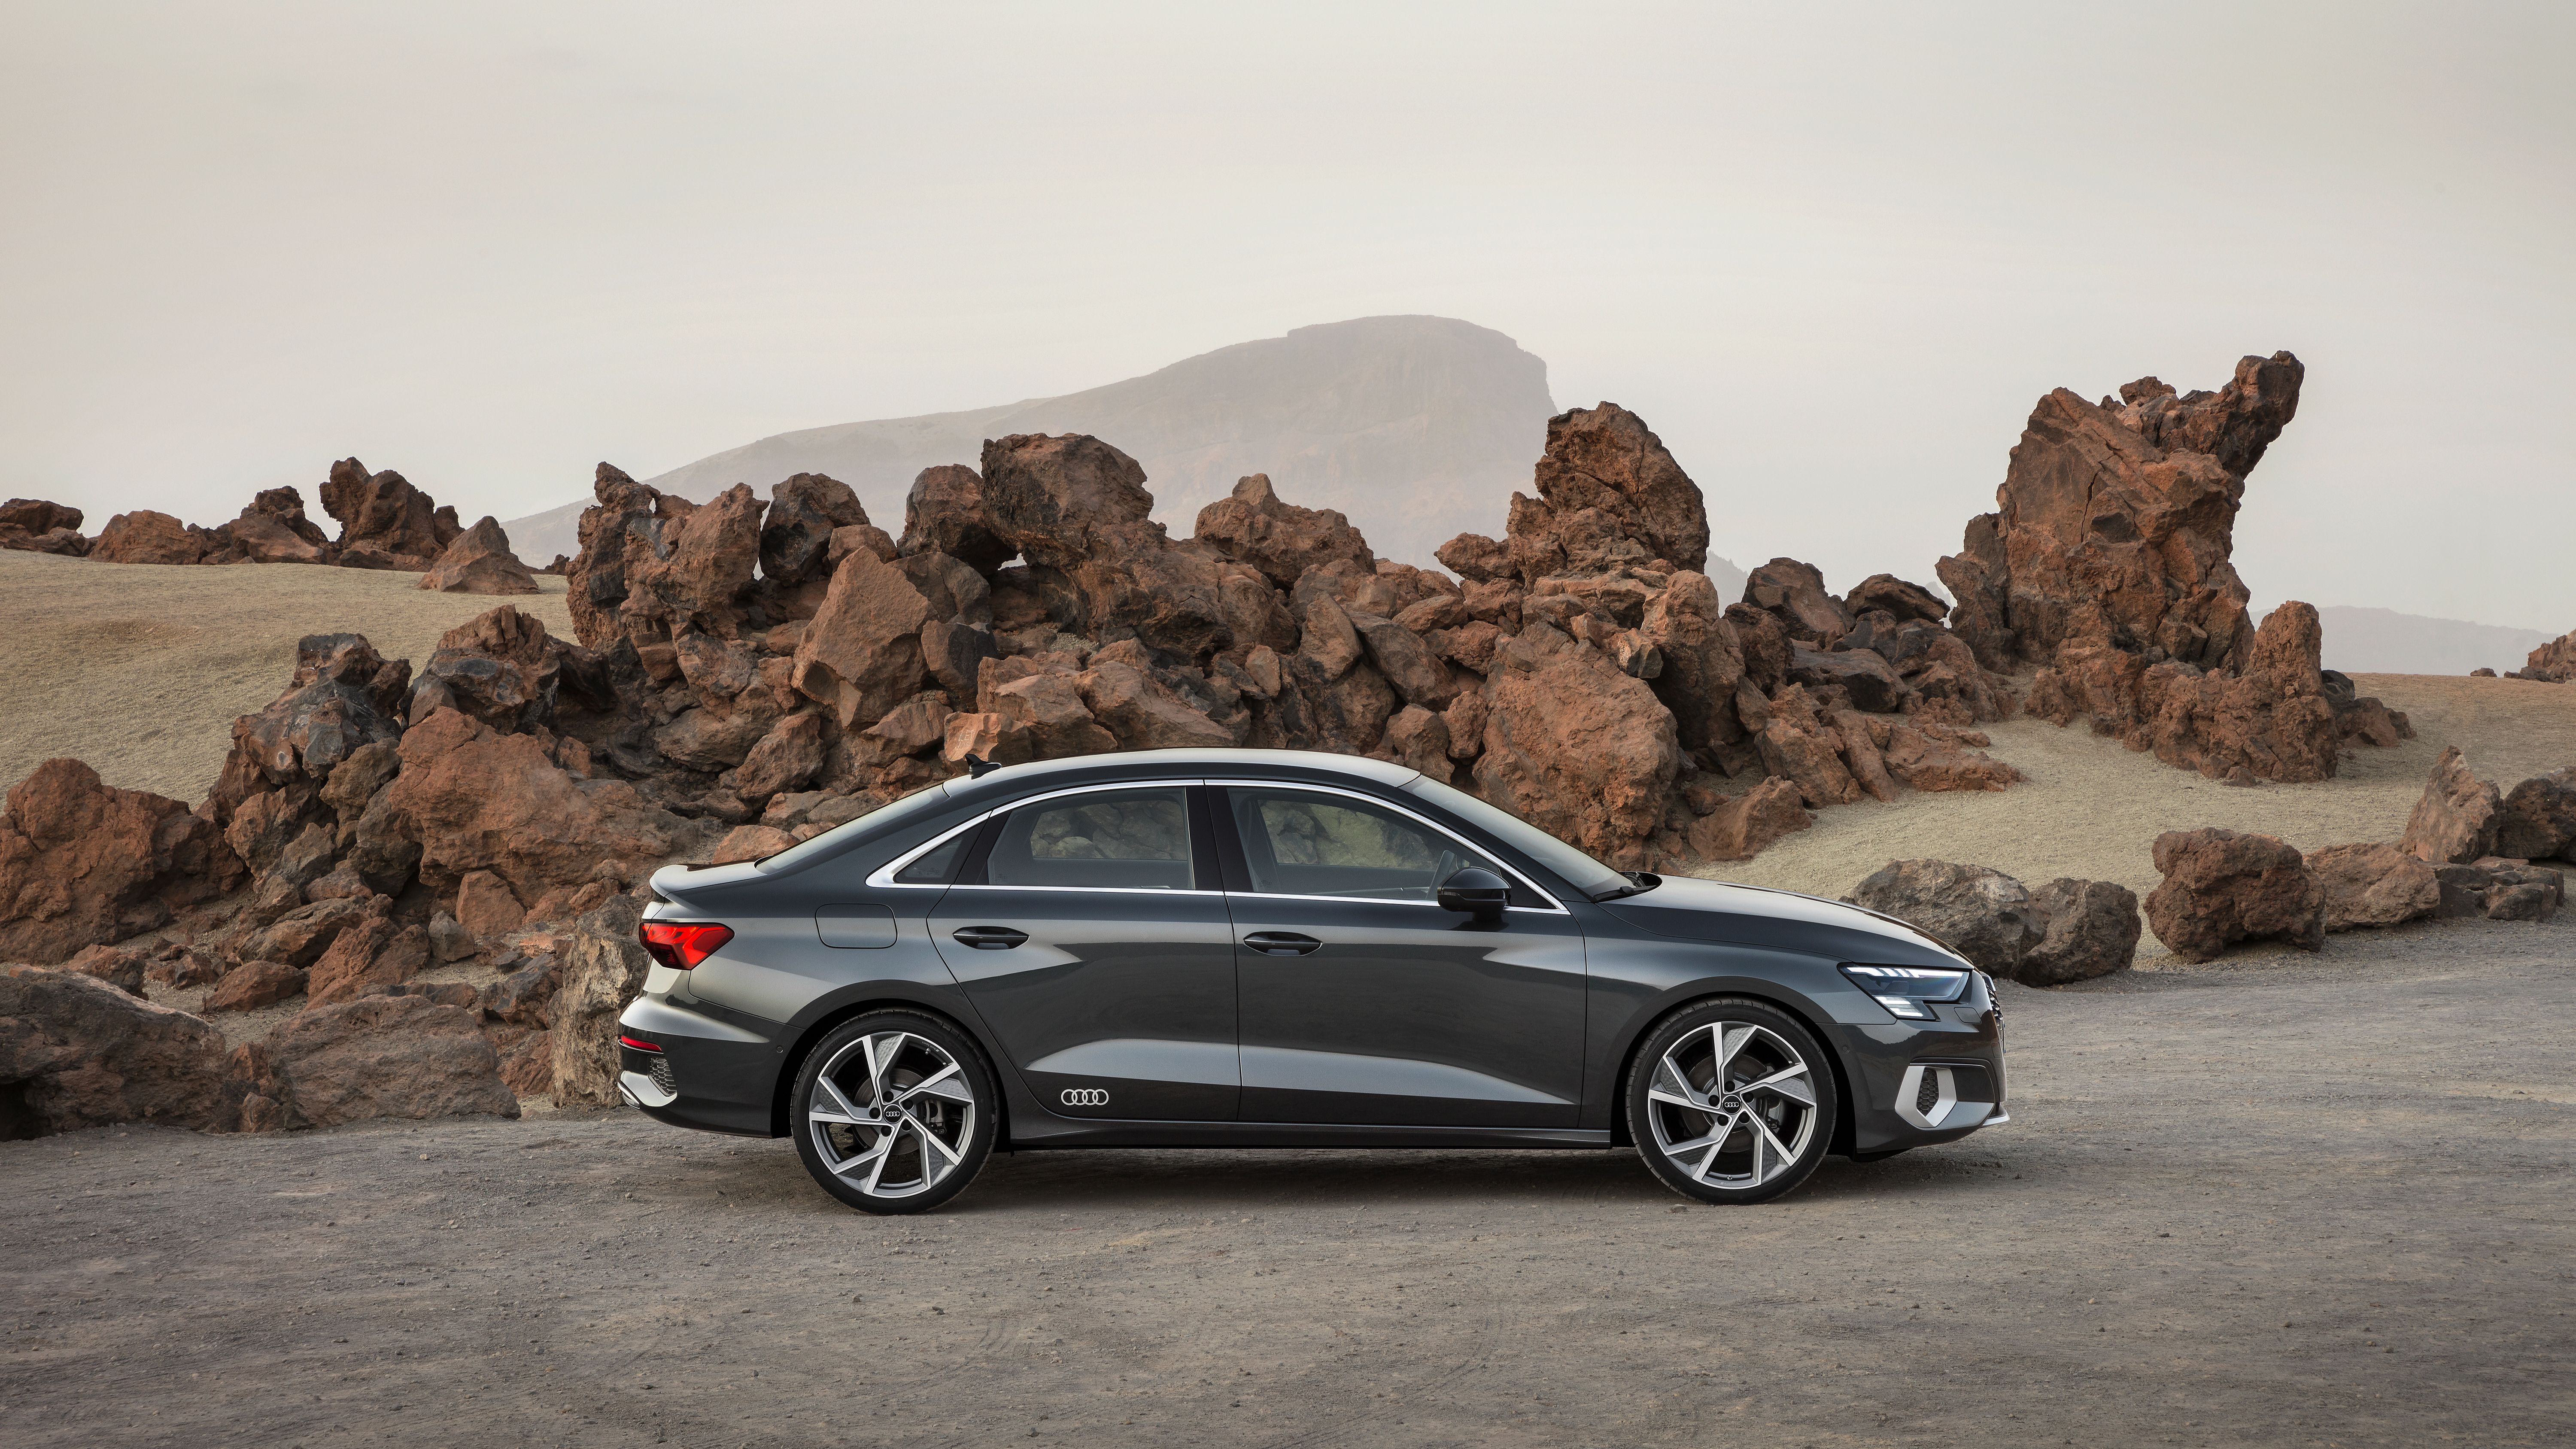 Side profile of the all new Audi A3 Saloon car